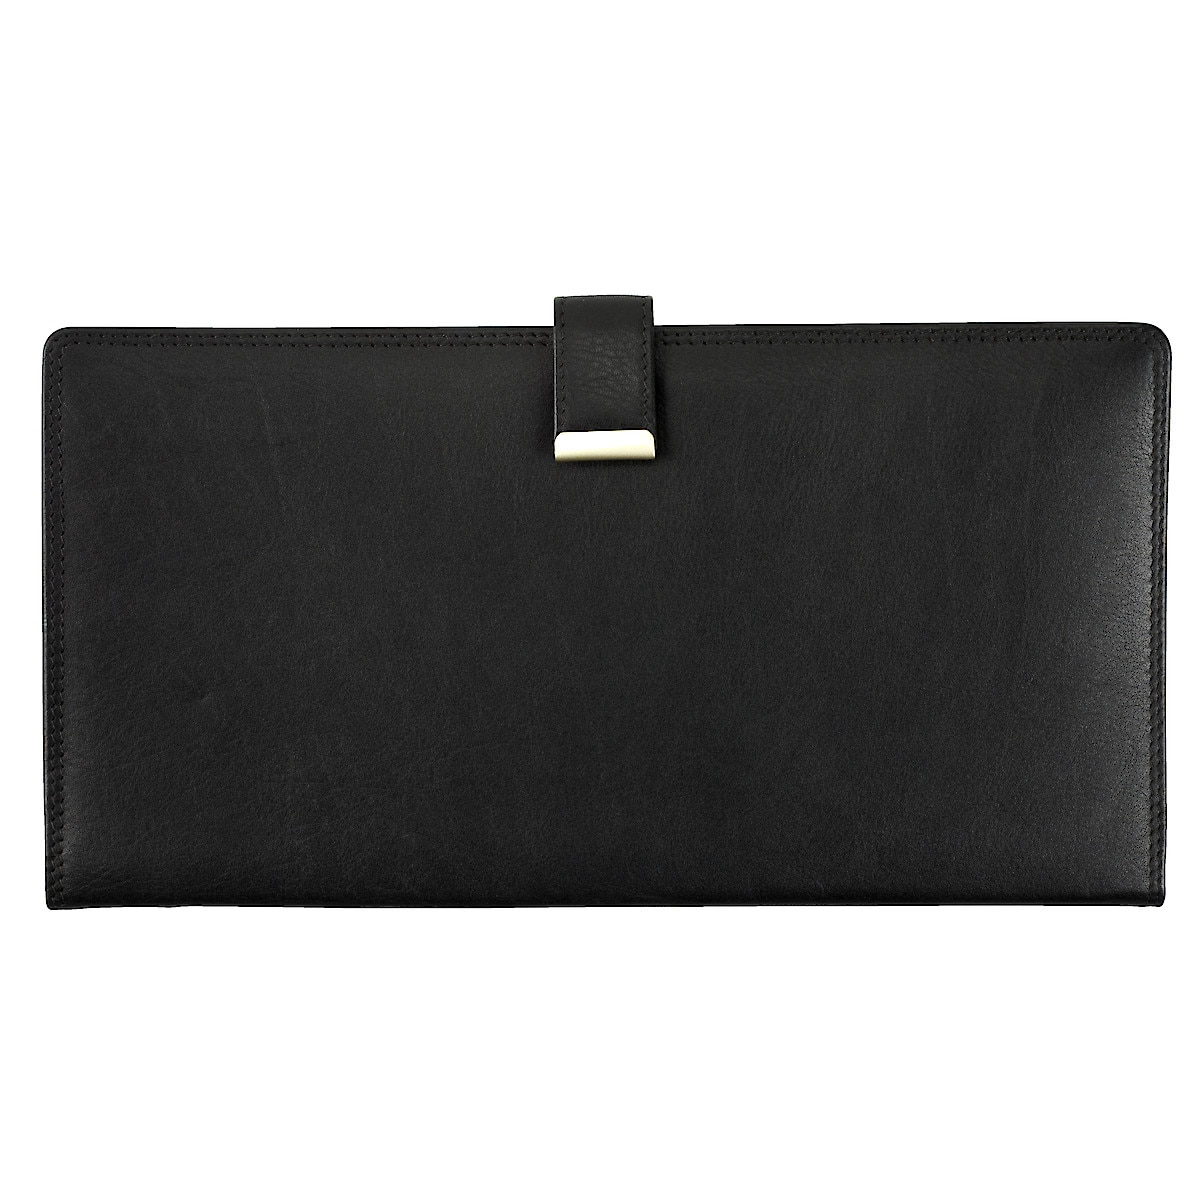 Cantoni Travel Wallet